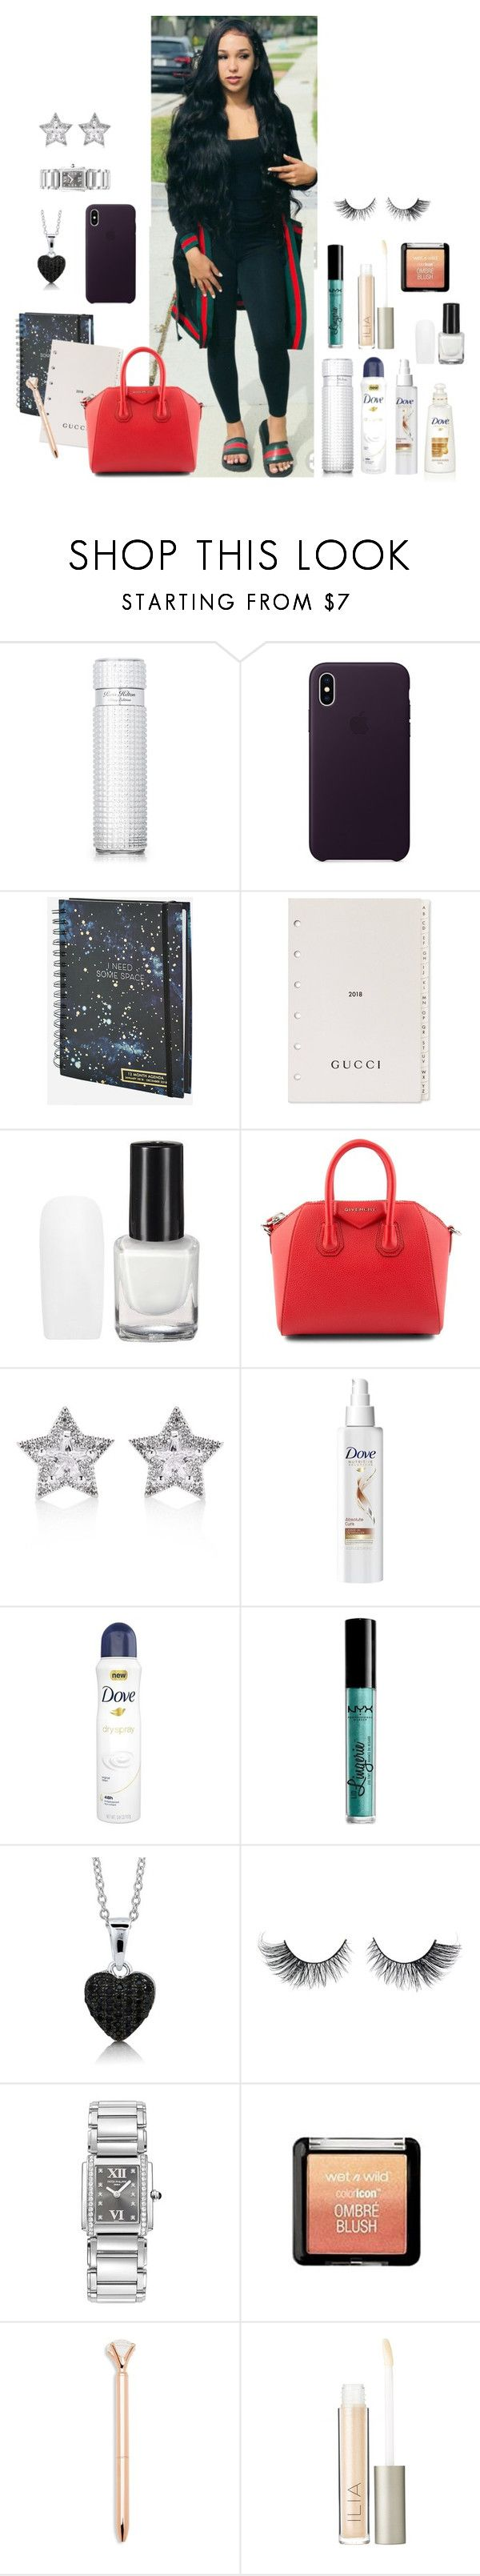 """Untitled #468"" by whitneykay ❤ liked on Polyvore featuring Paris Hilton, Ashley Stewart, Gucci, Givenchy, CZ by Kenneth Jay Lane, NYX, BERRICLE, Patek Philippe, Wet n Wild and Saks Fifth Avenue"